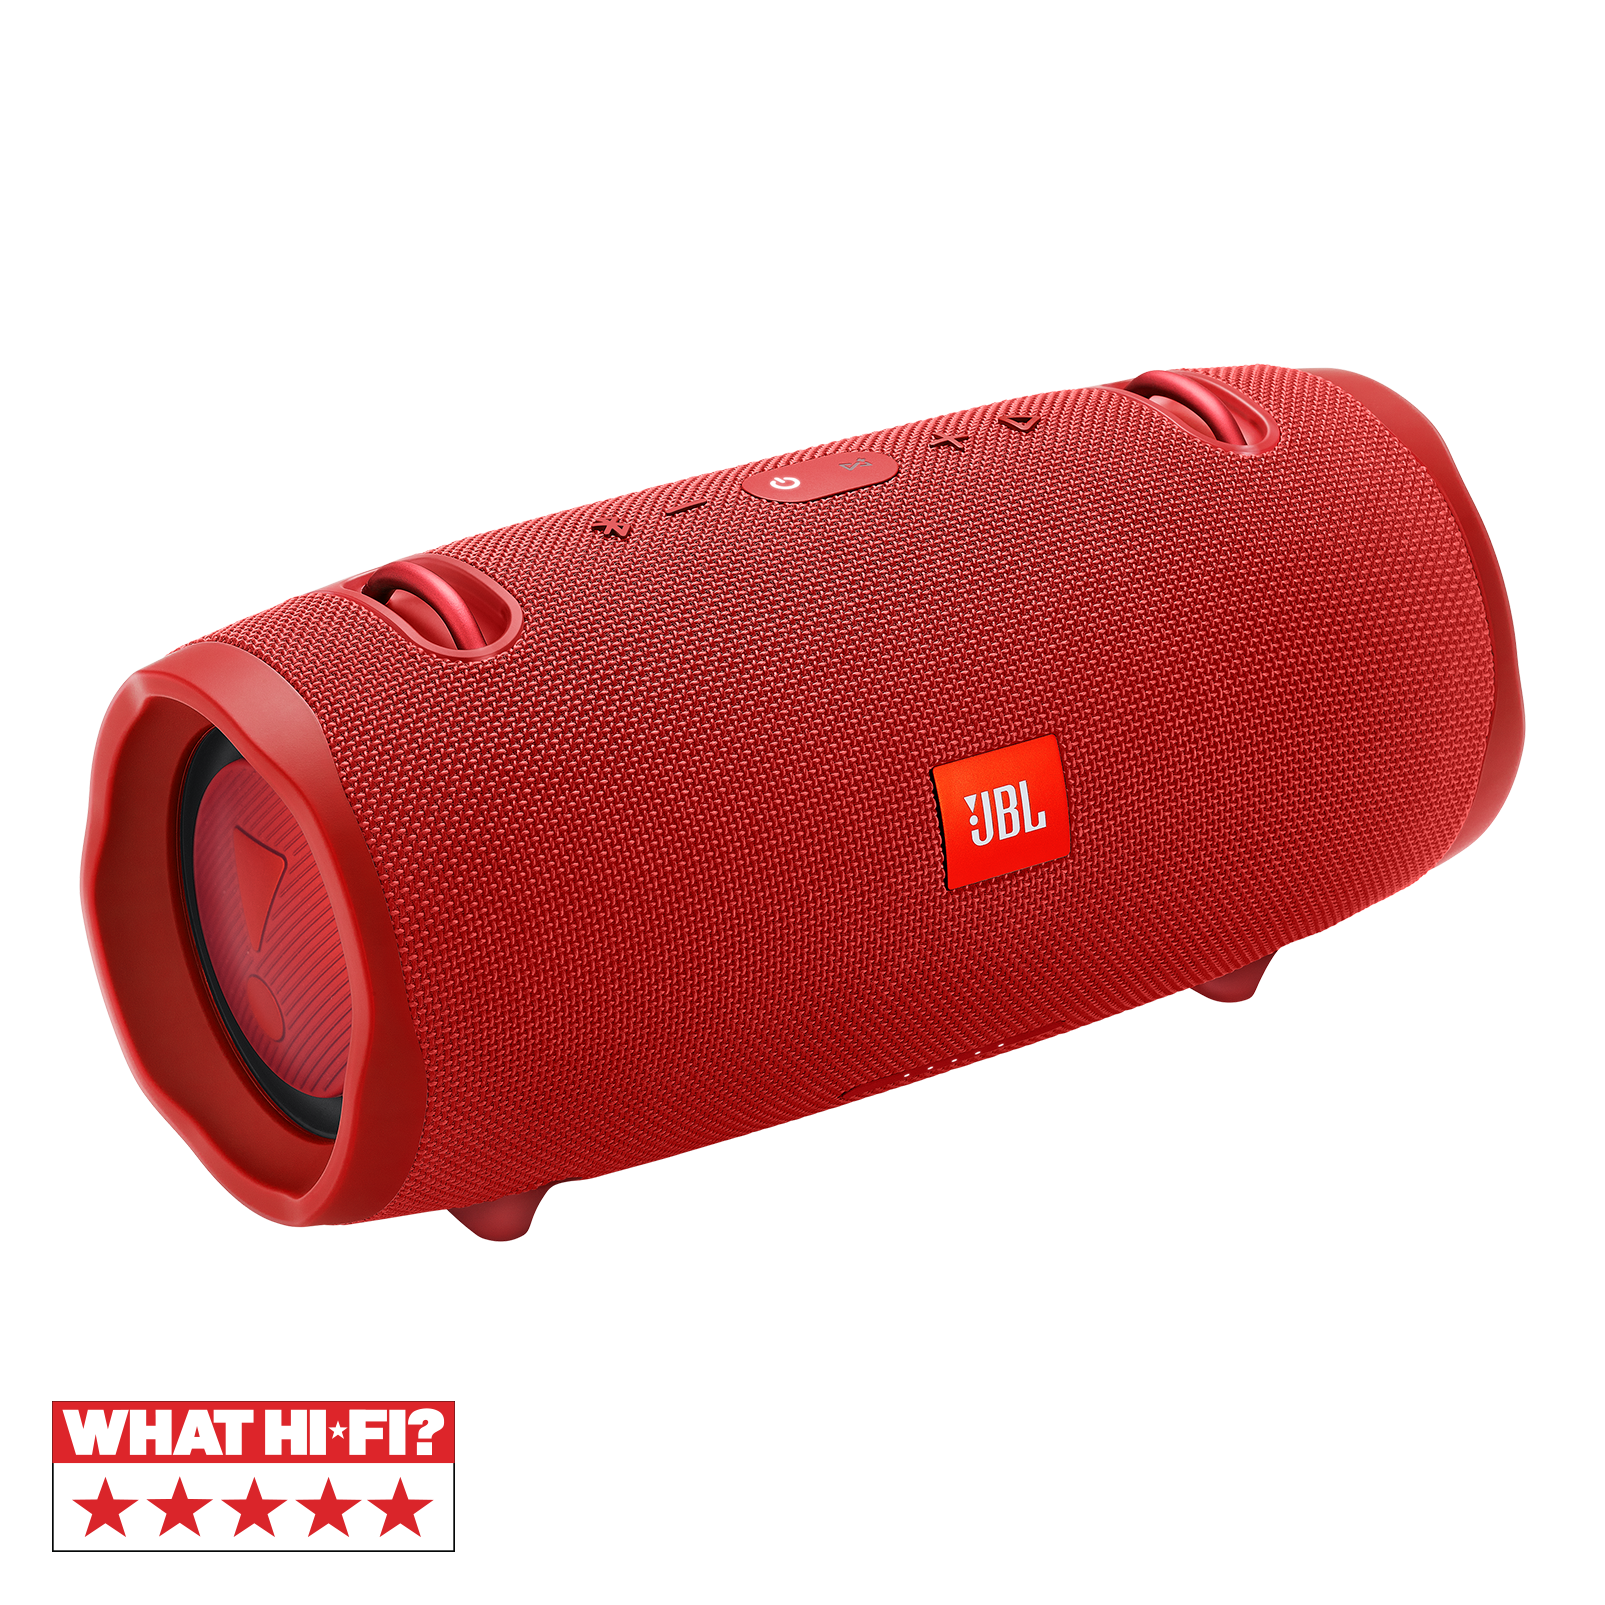 JBL Xtreme 2 - Red - Portable Bluetooth Speaker - Hero